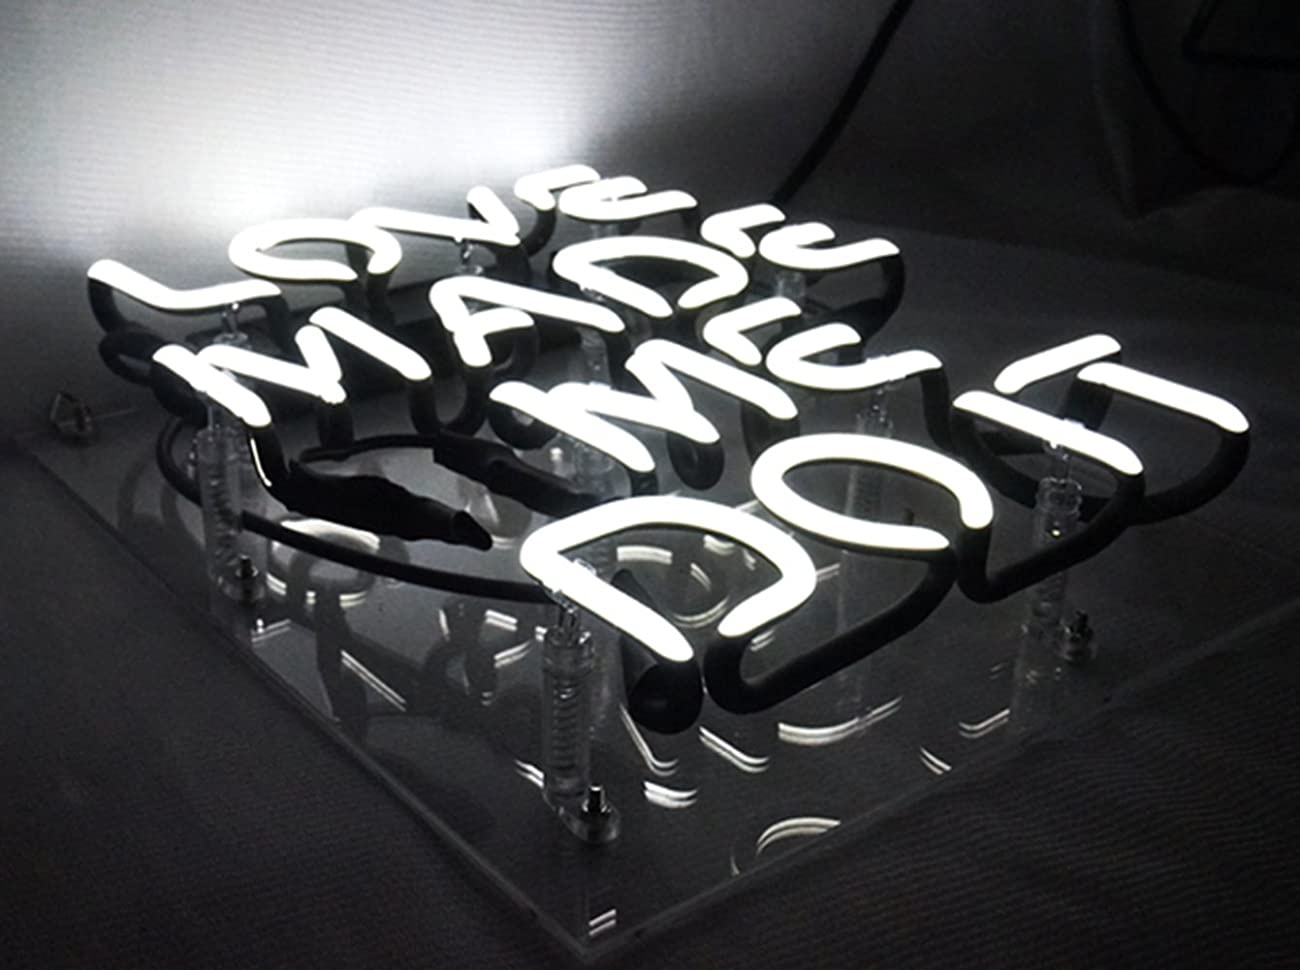 Love Made Me Doit Cool Glass Neon sign Led Lamp Night Light Display Gift 8.7